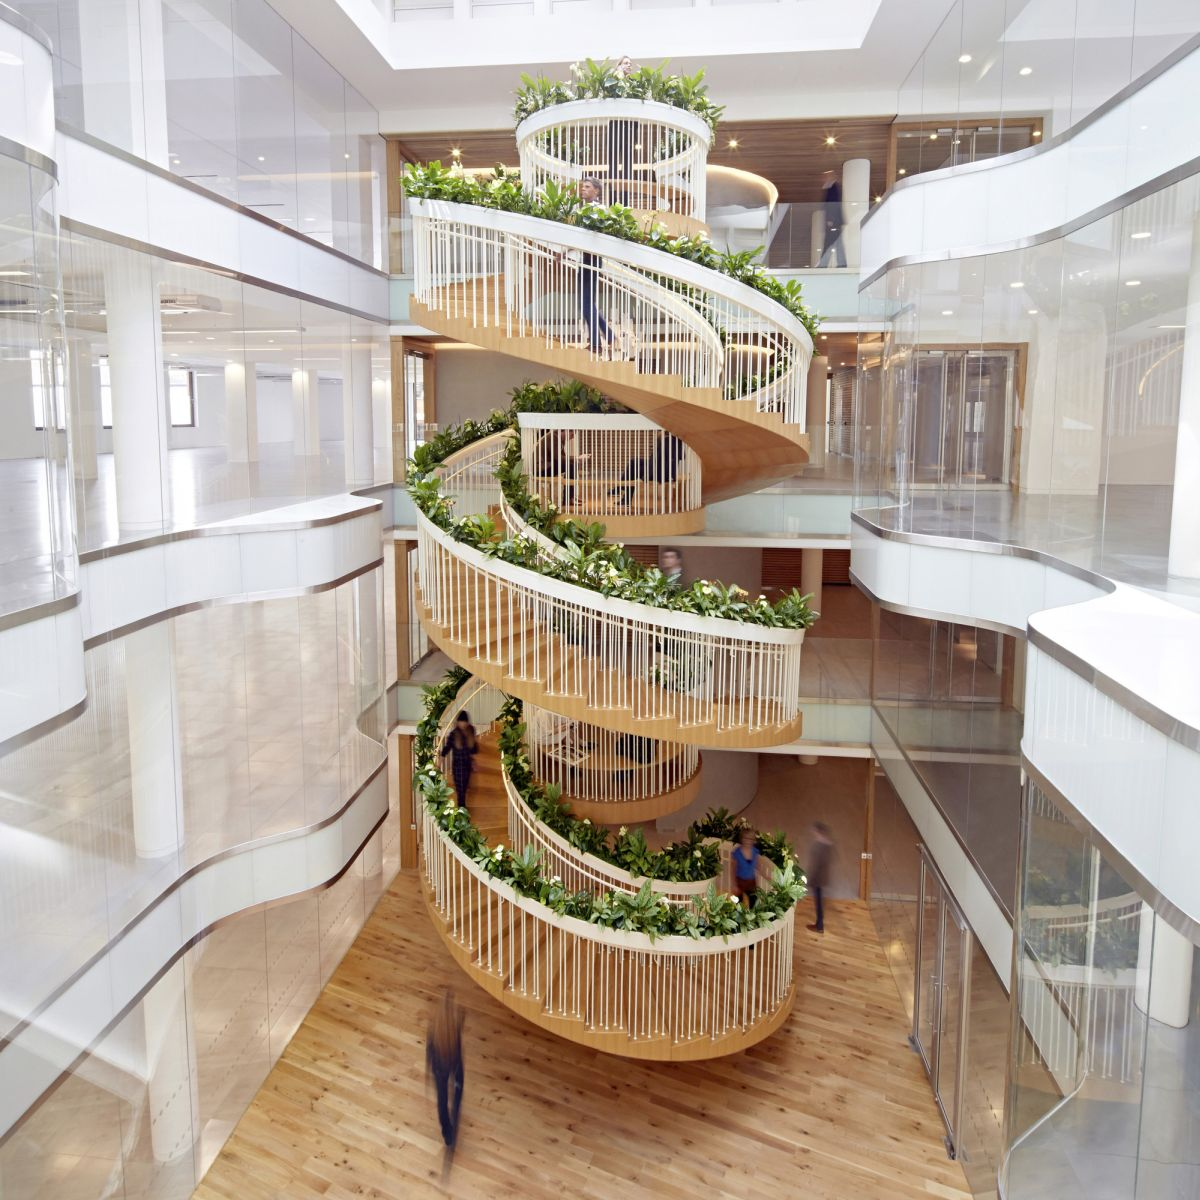 51 Stunning Staircase Design Ideas: 20 Of The Most Beautiful Spiral Staircase Designs Ever